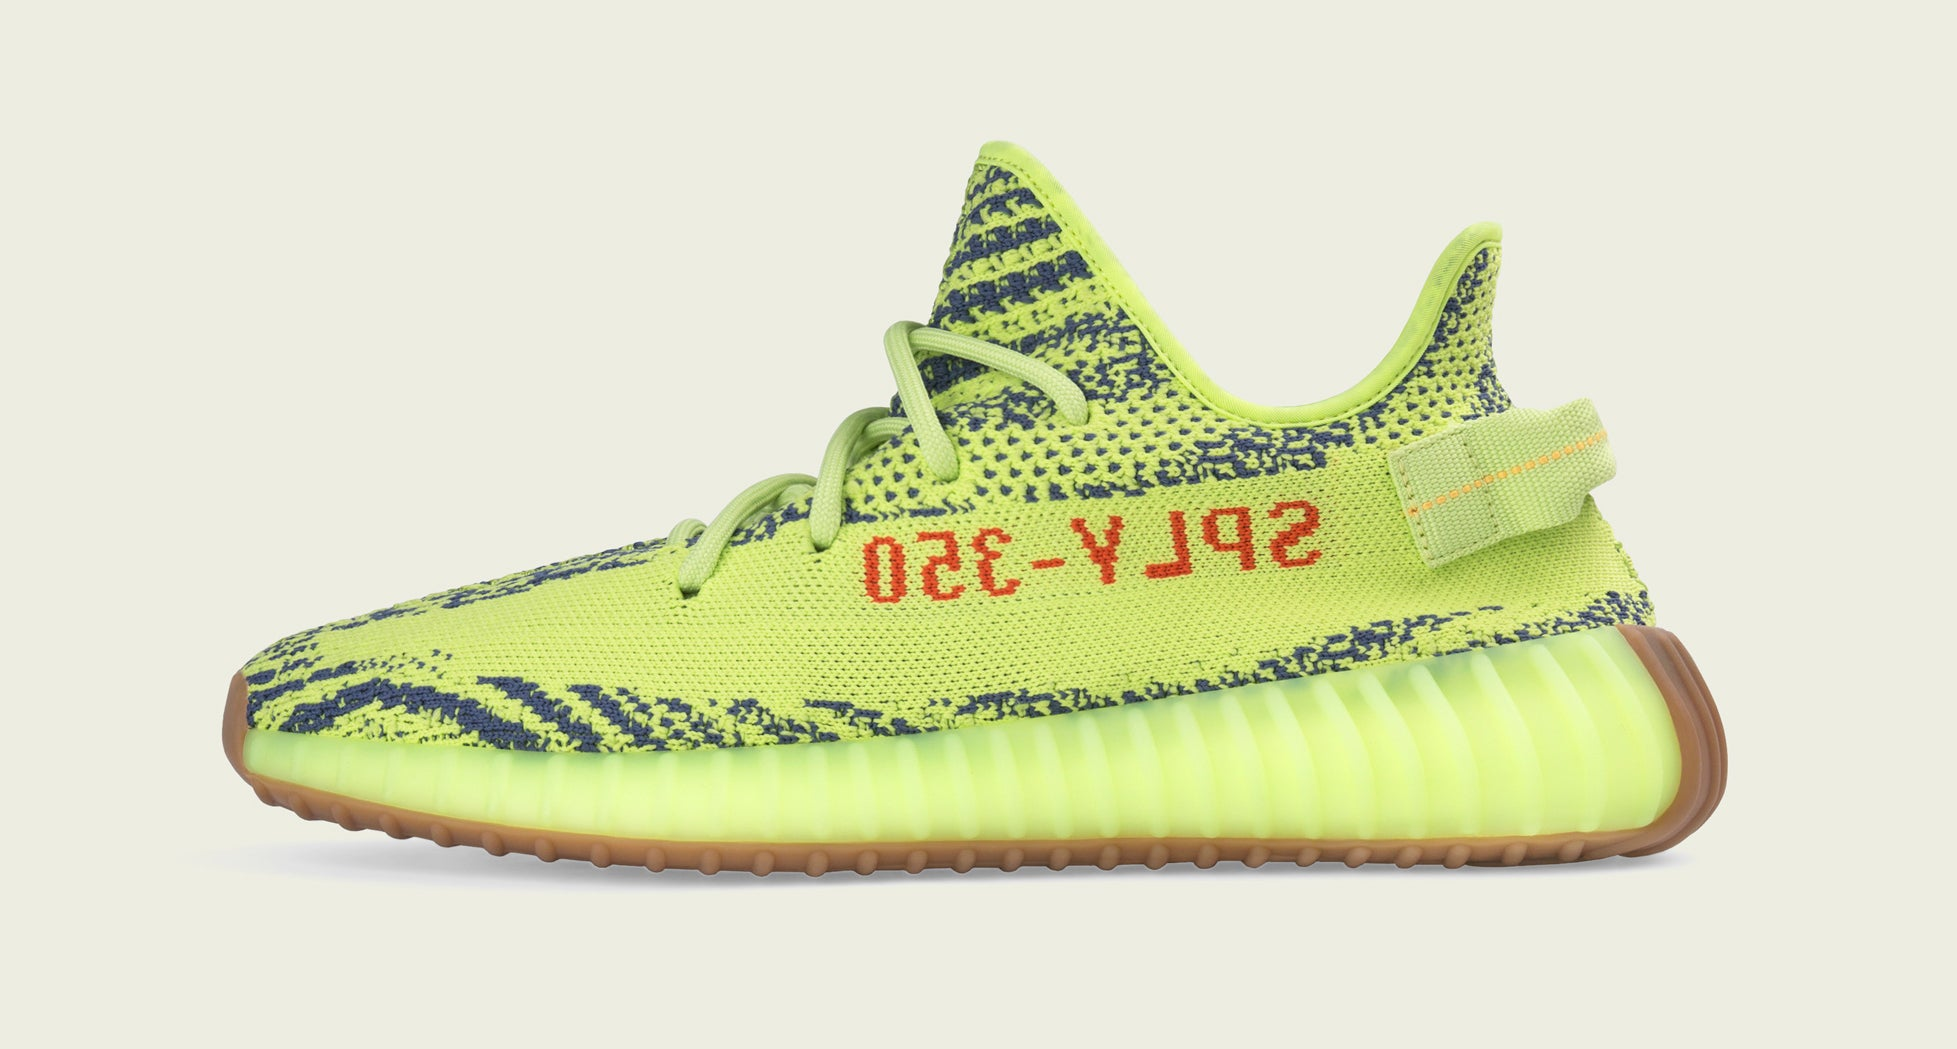 Yeezy BOOST 350 v2 Semi-Frozen Yellow